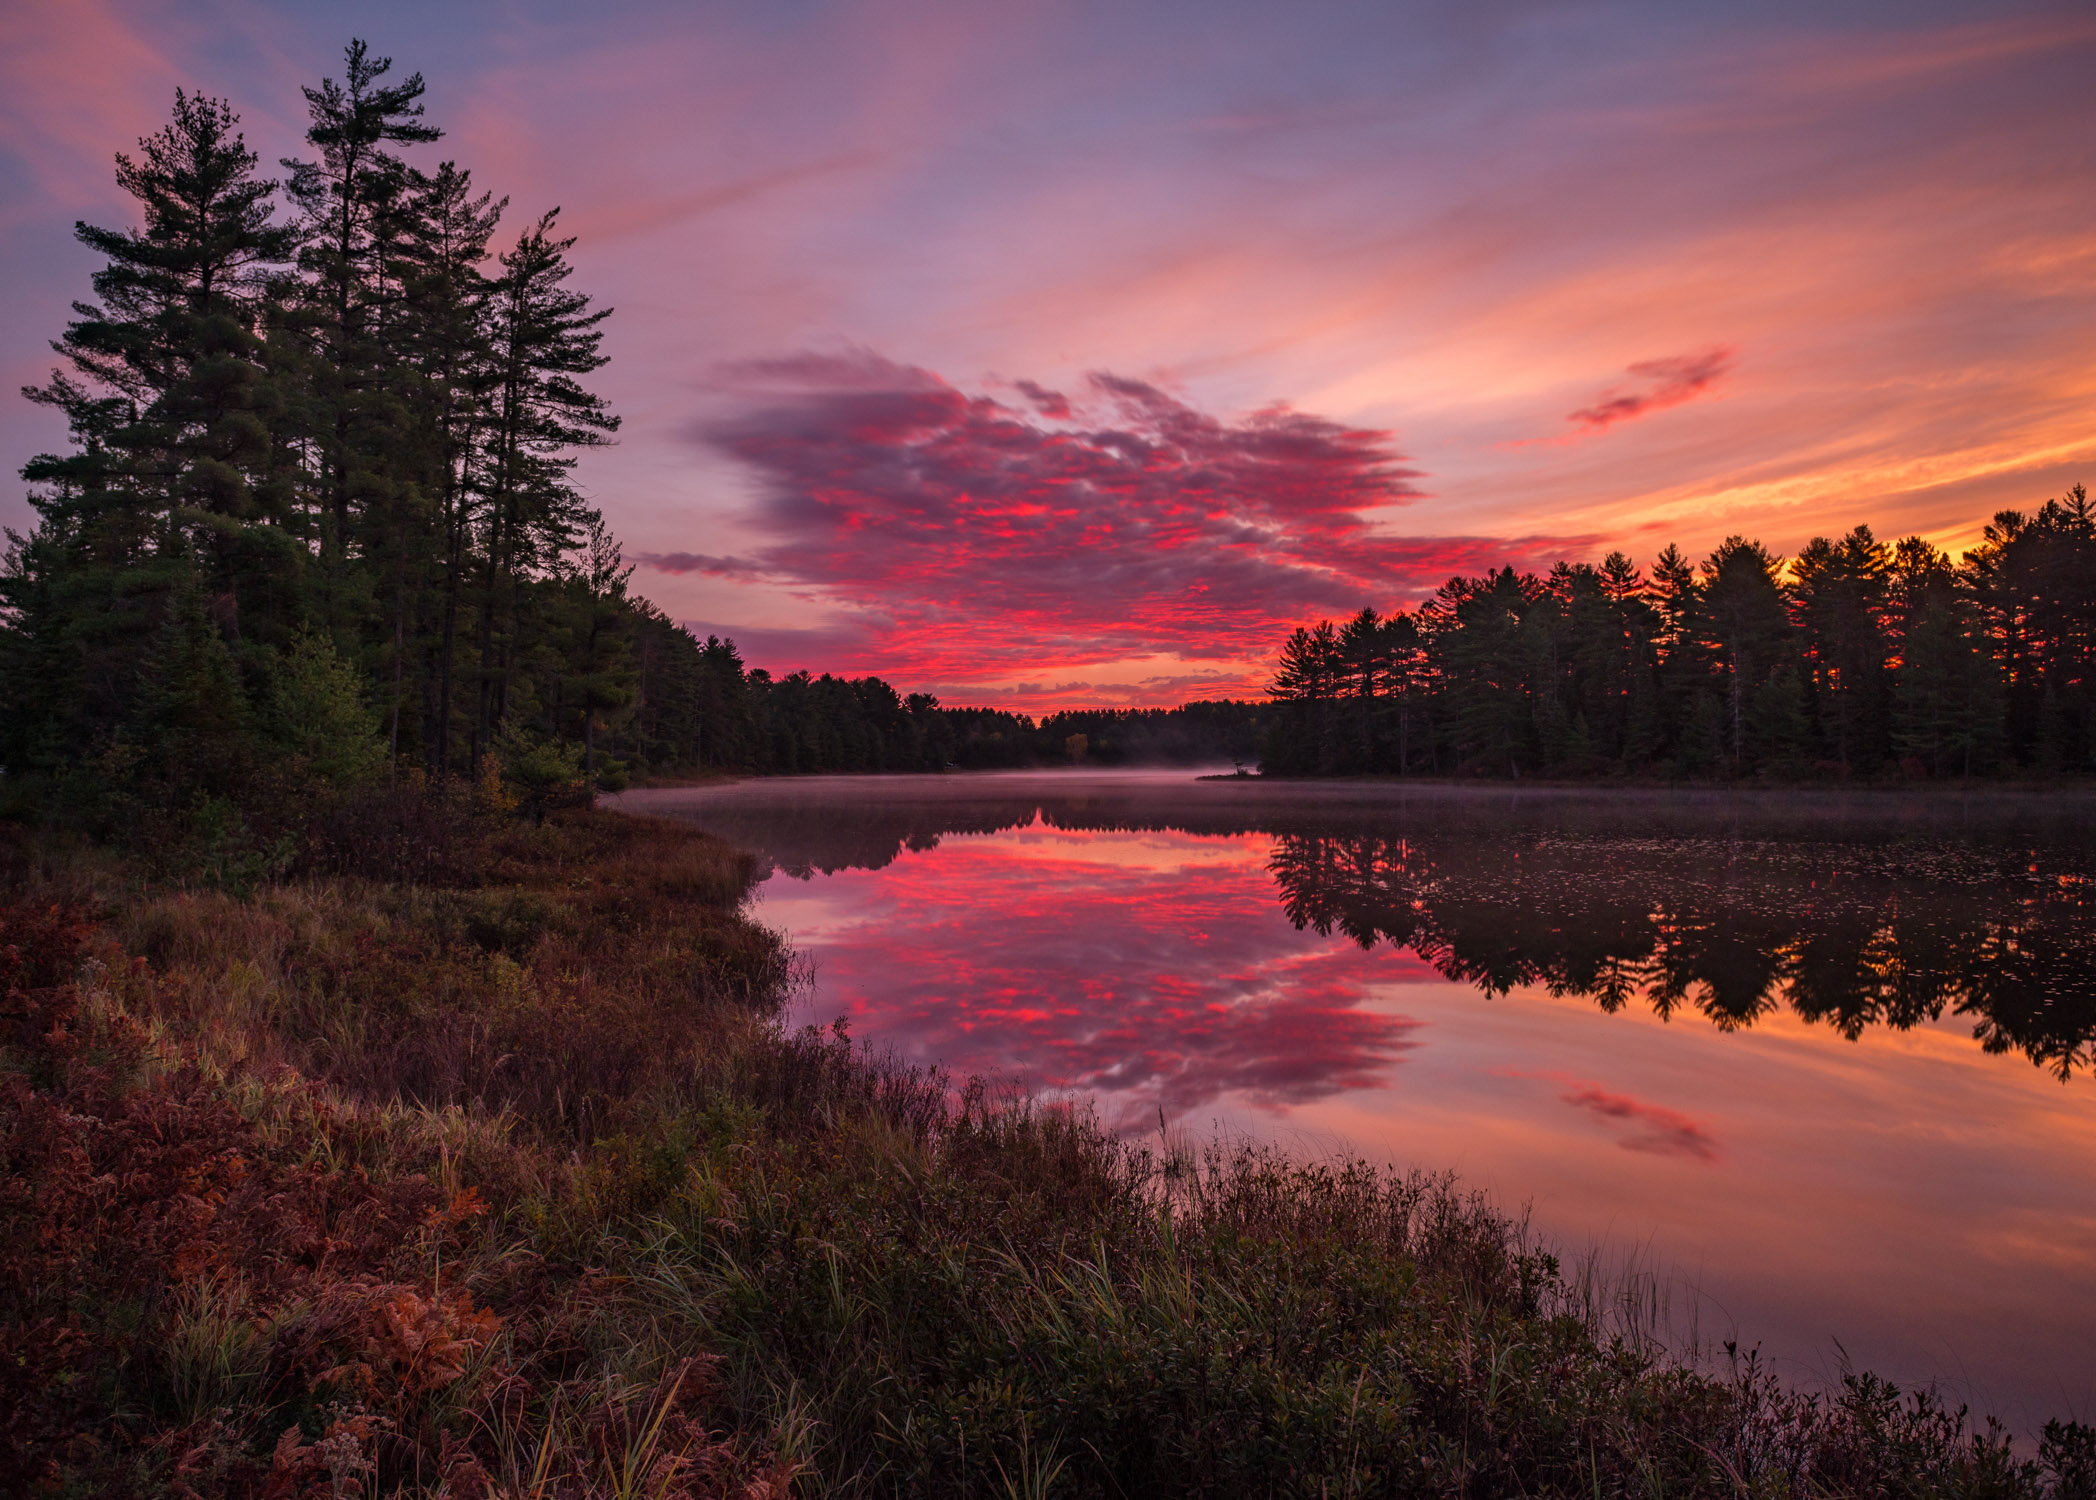 Sun rises over the campgrounds at Mew Lake, Algonquin Park, Ontario in fall.